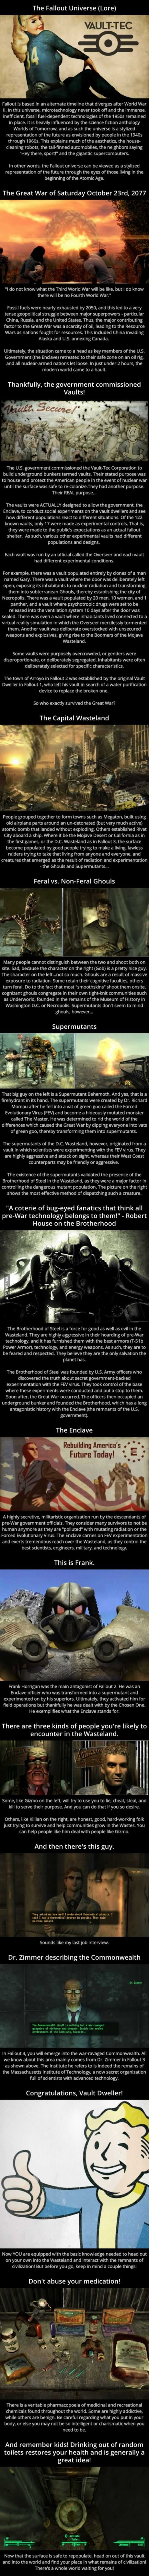 The Fallout Universe And Lore                                                                                                                                                      More